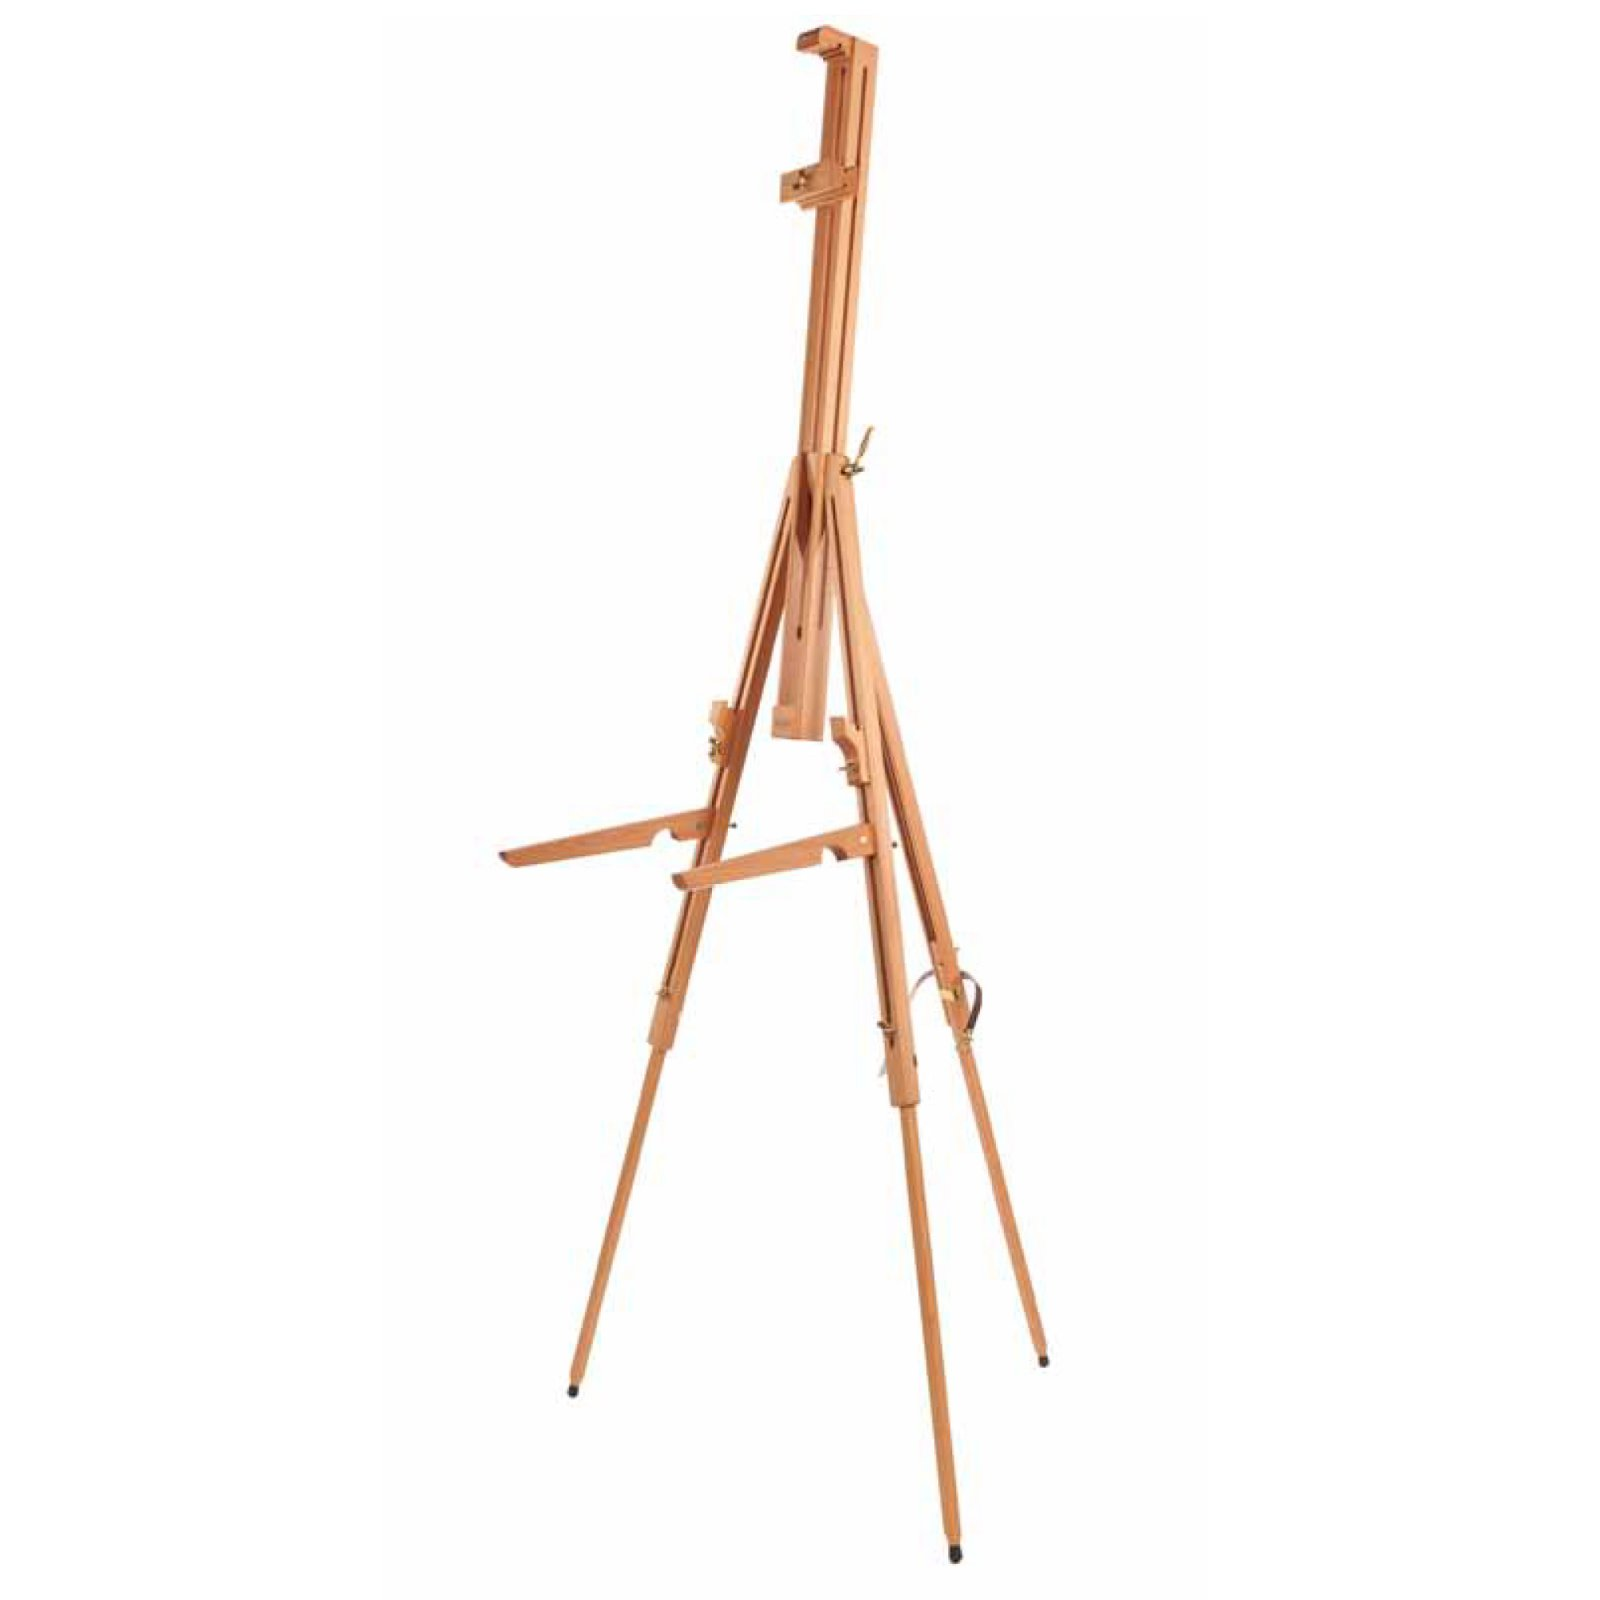 FOLDING FIELD EASEL WITH ARMS (M/27M)